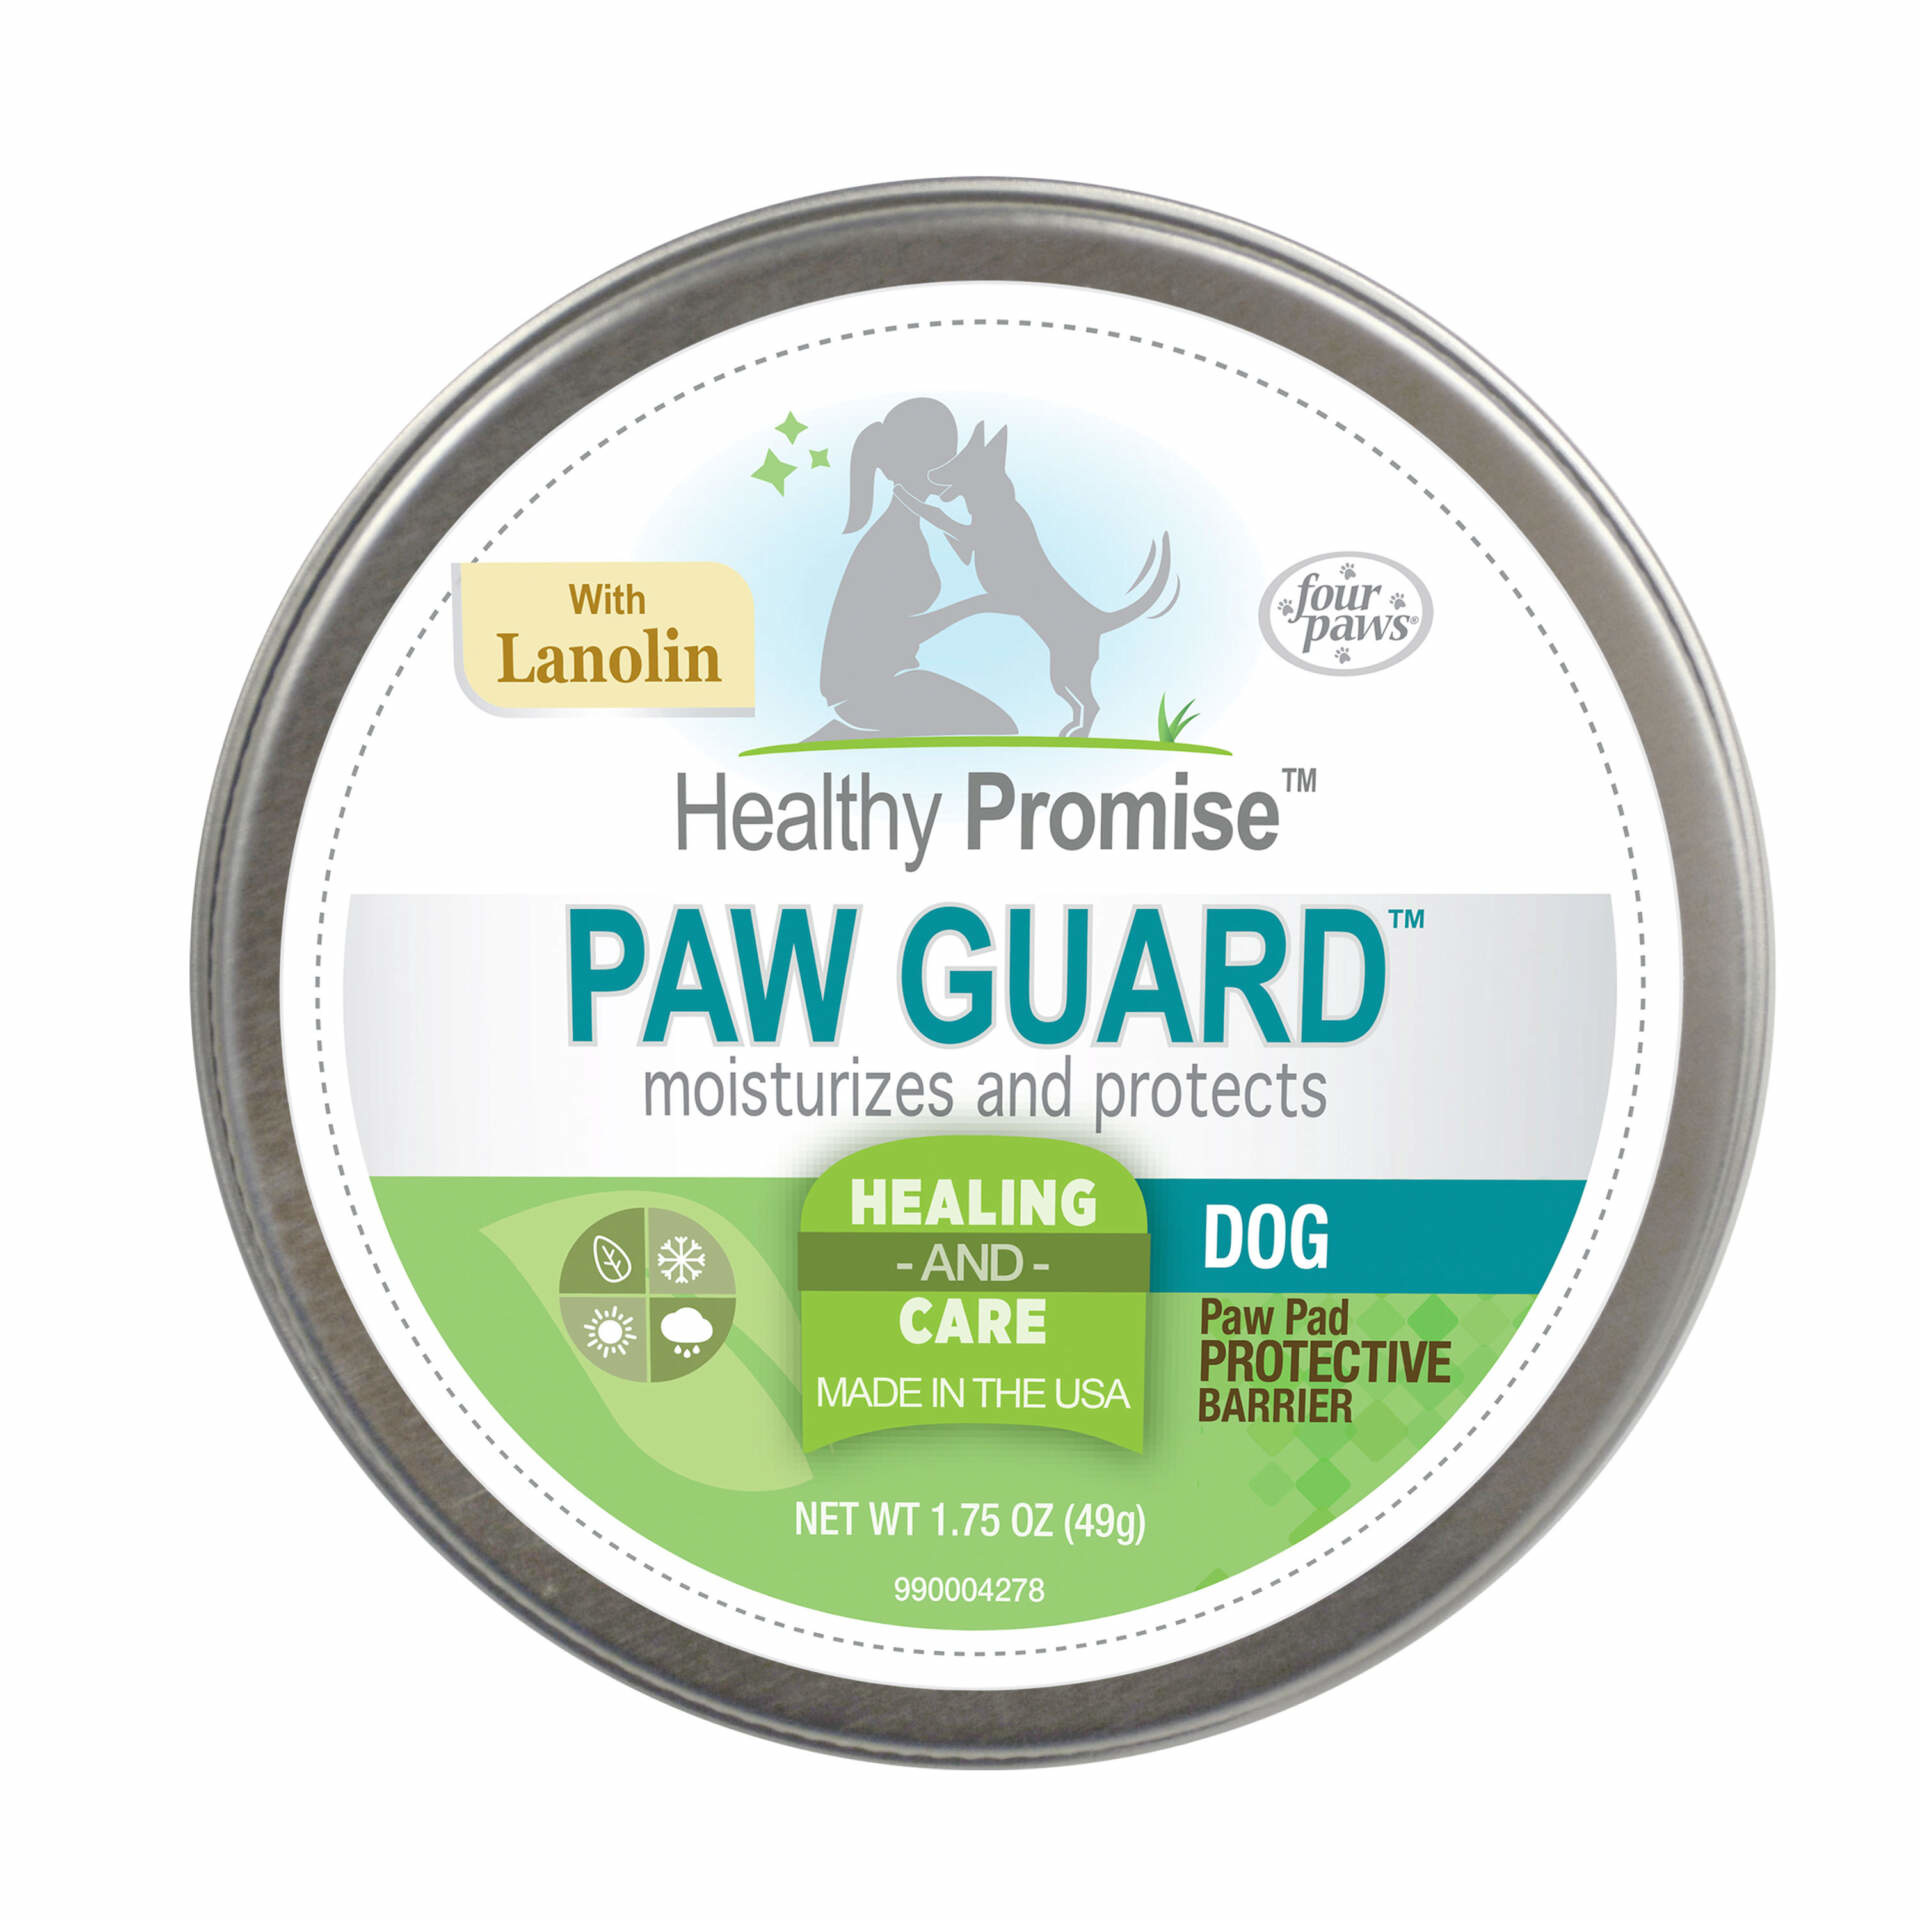 Four Paws Four Paws Paw Guard Wax 1.75oz